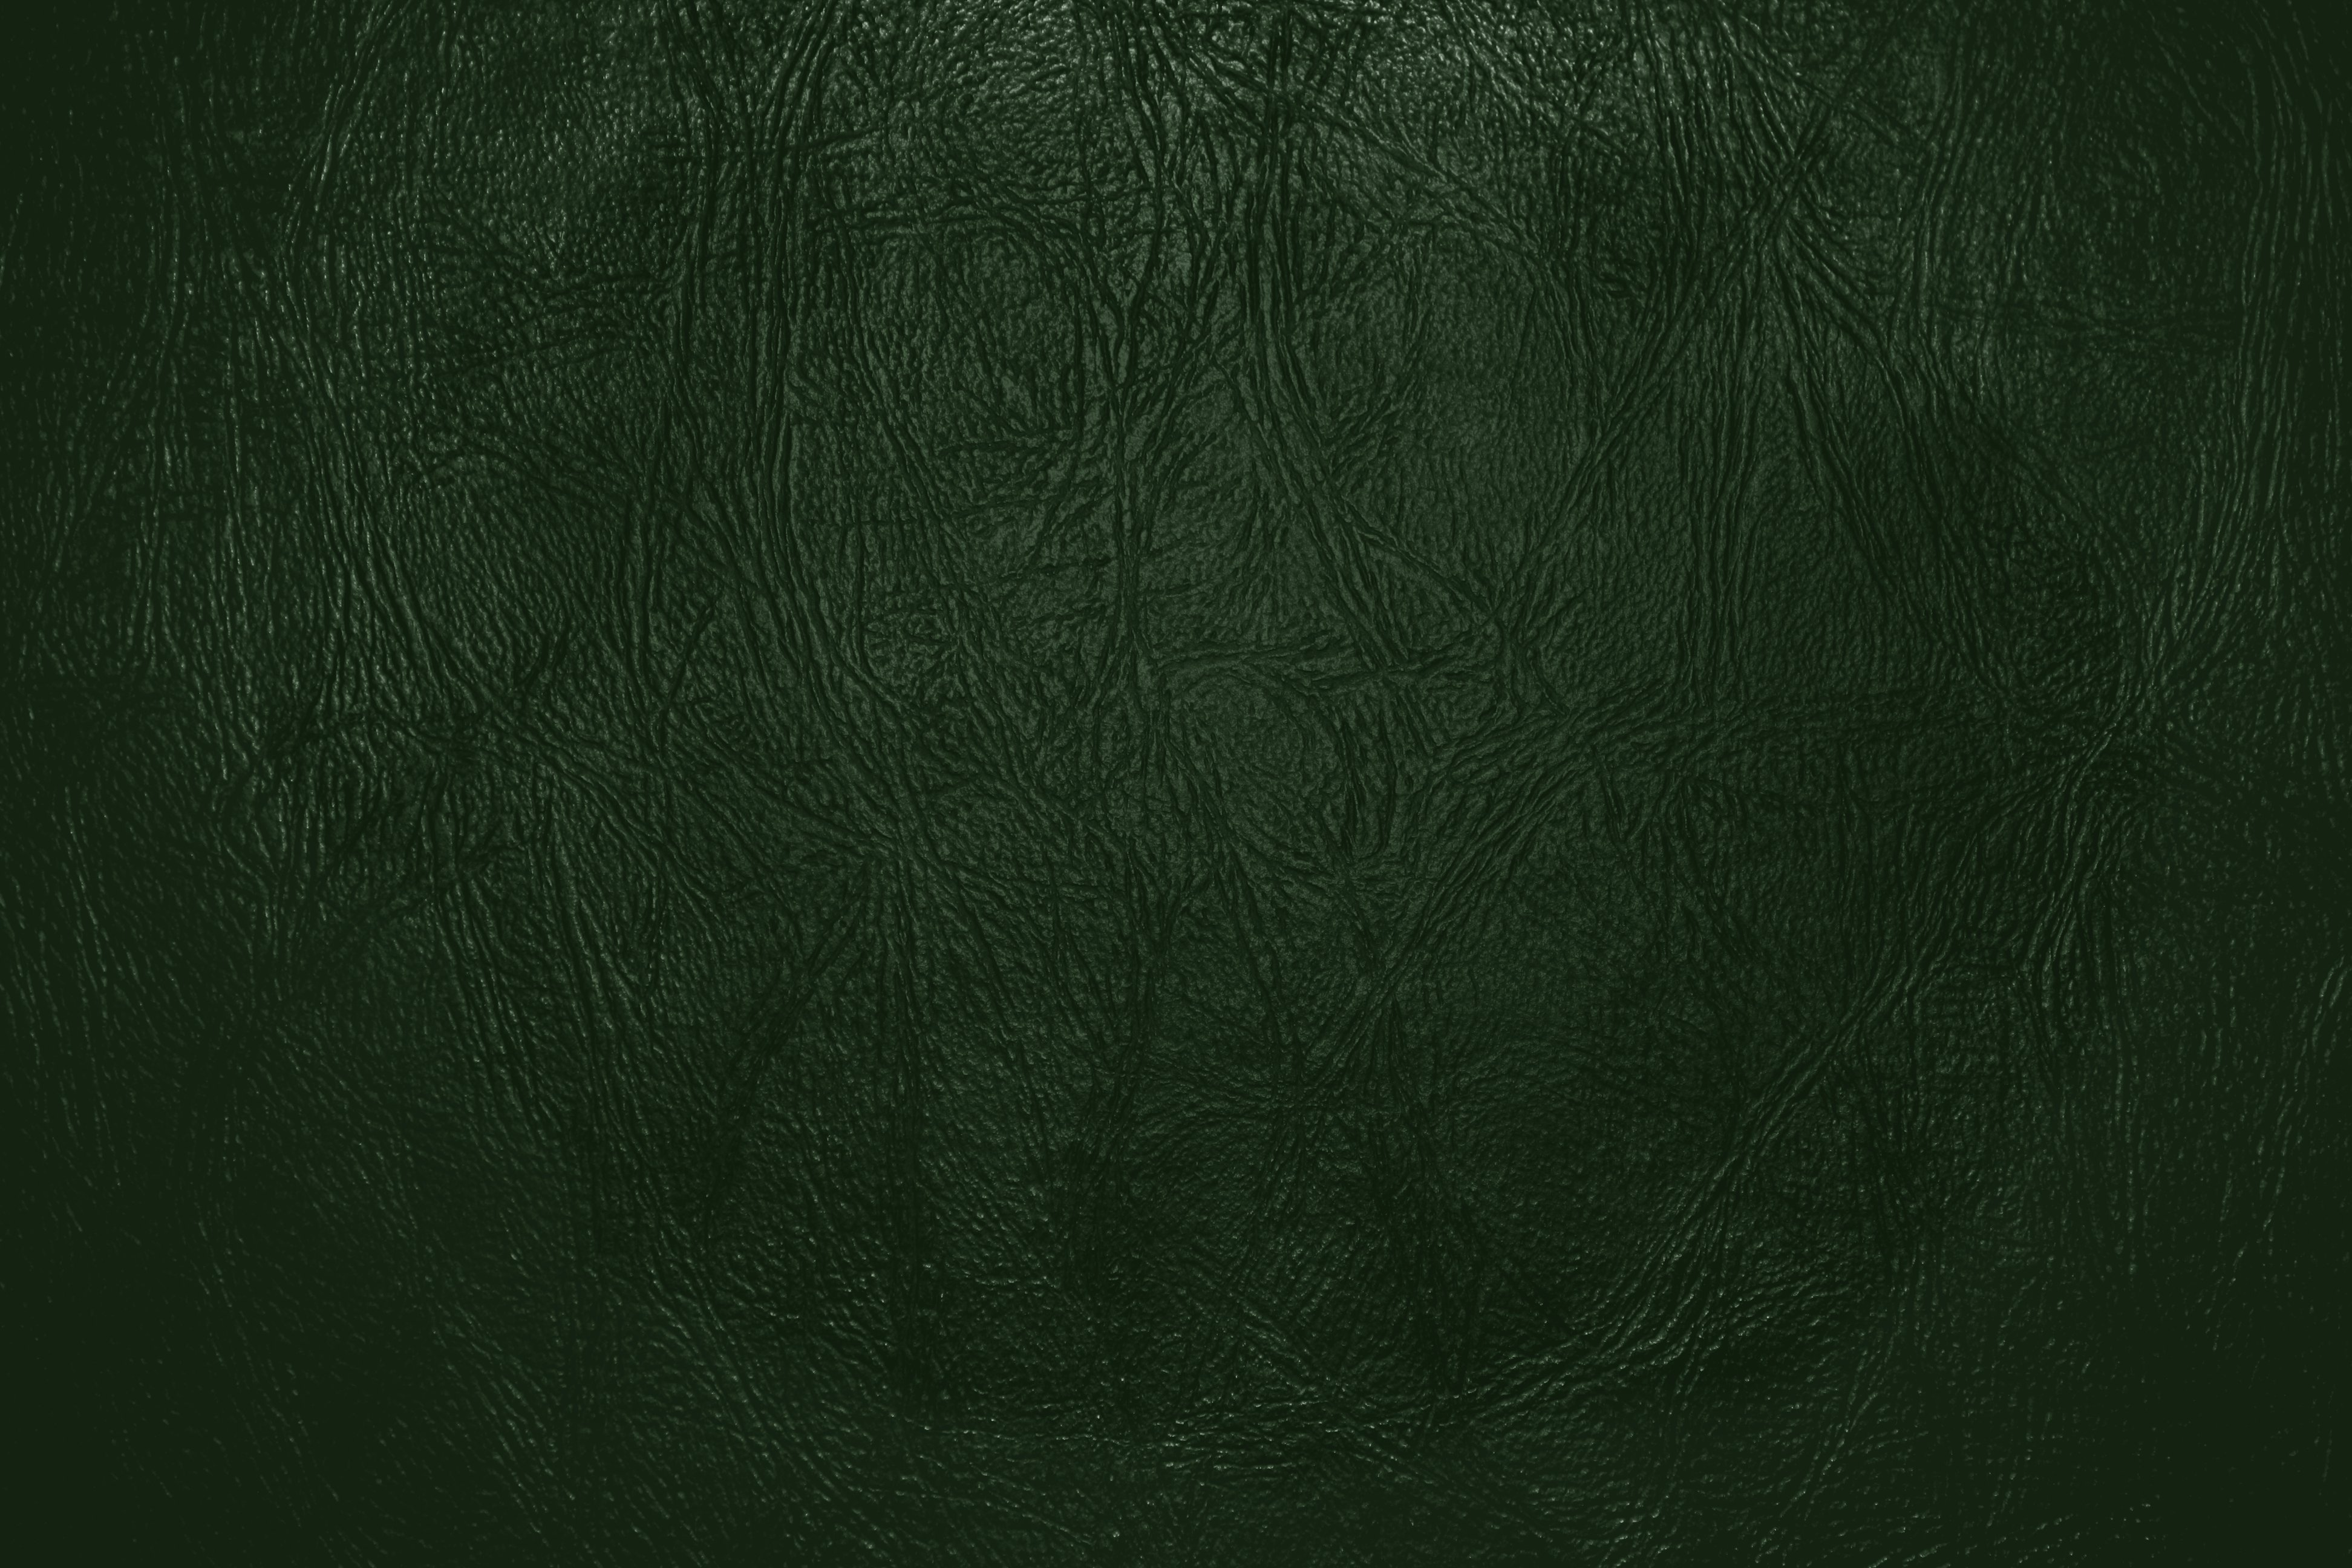 Forest Green Leather Close Up Texture  Photos Public Domain